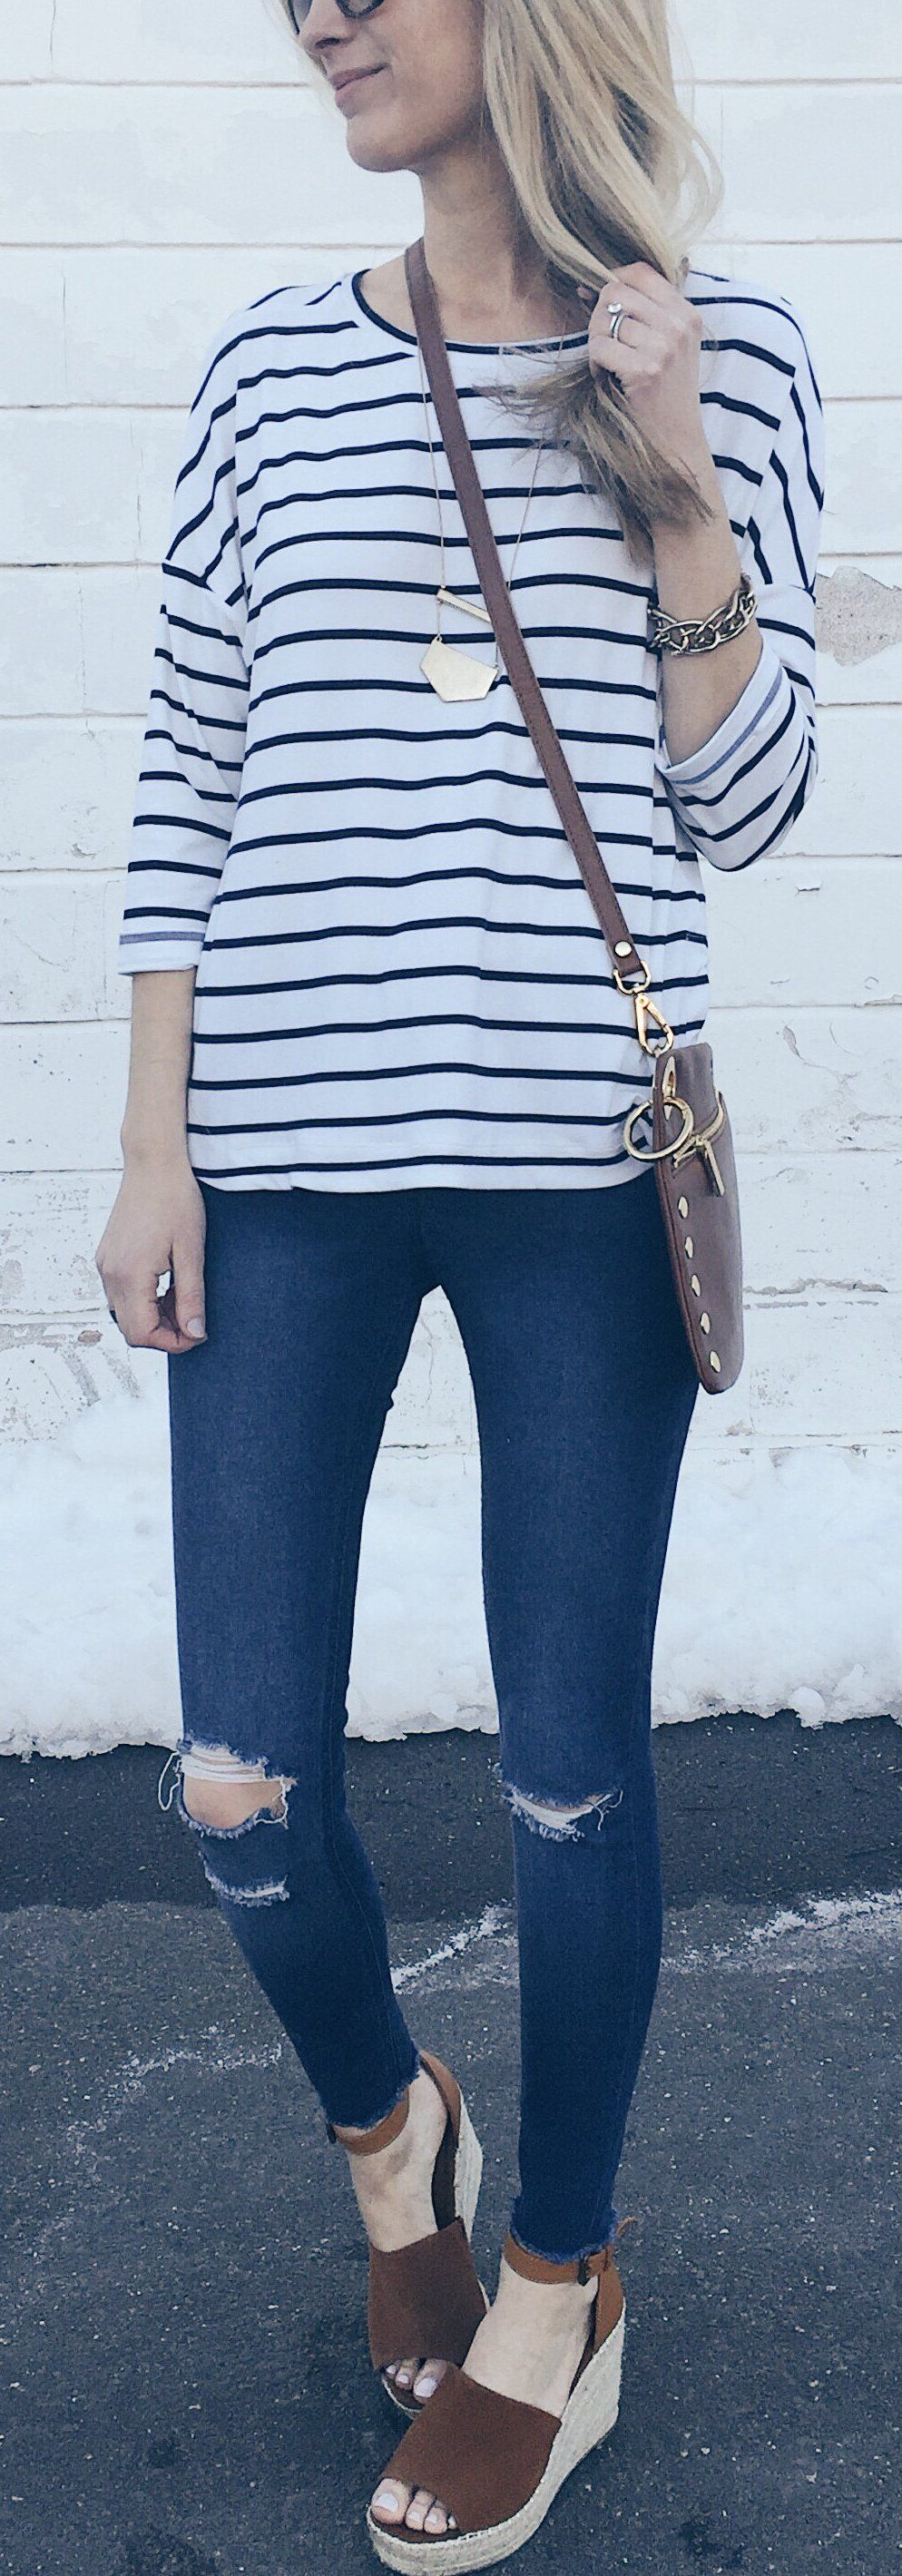 Skinny jeans for everyone